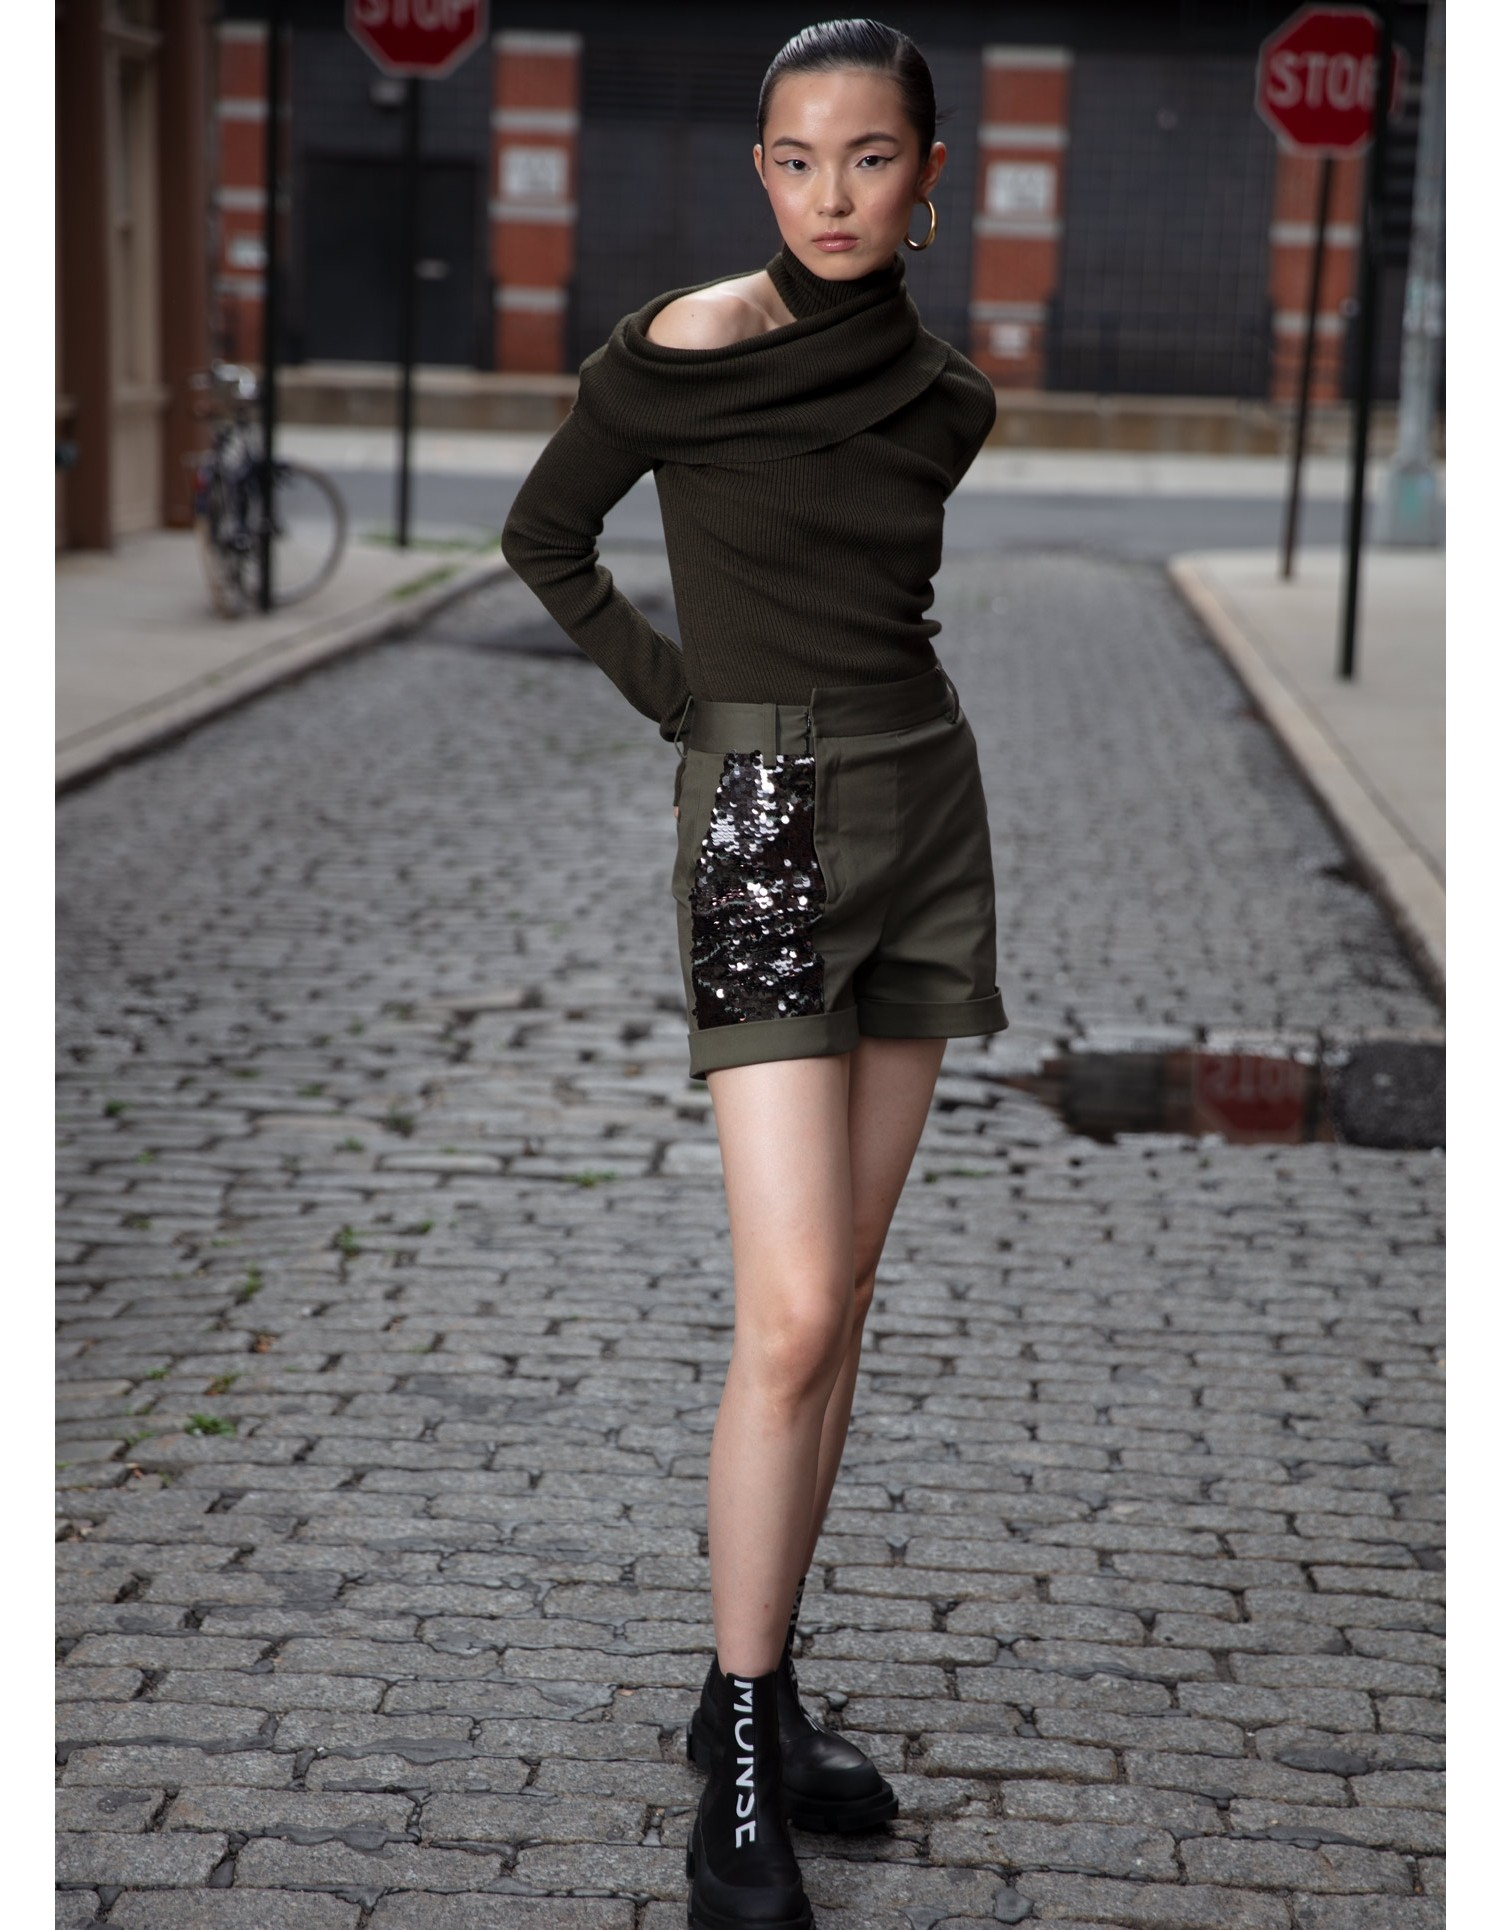 MONSE Foldover Draped Knit in Olive on Model Front View